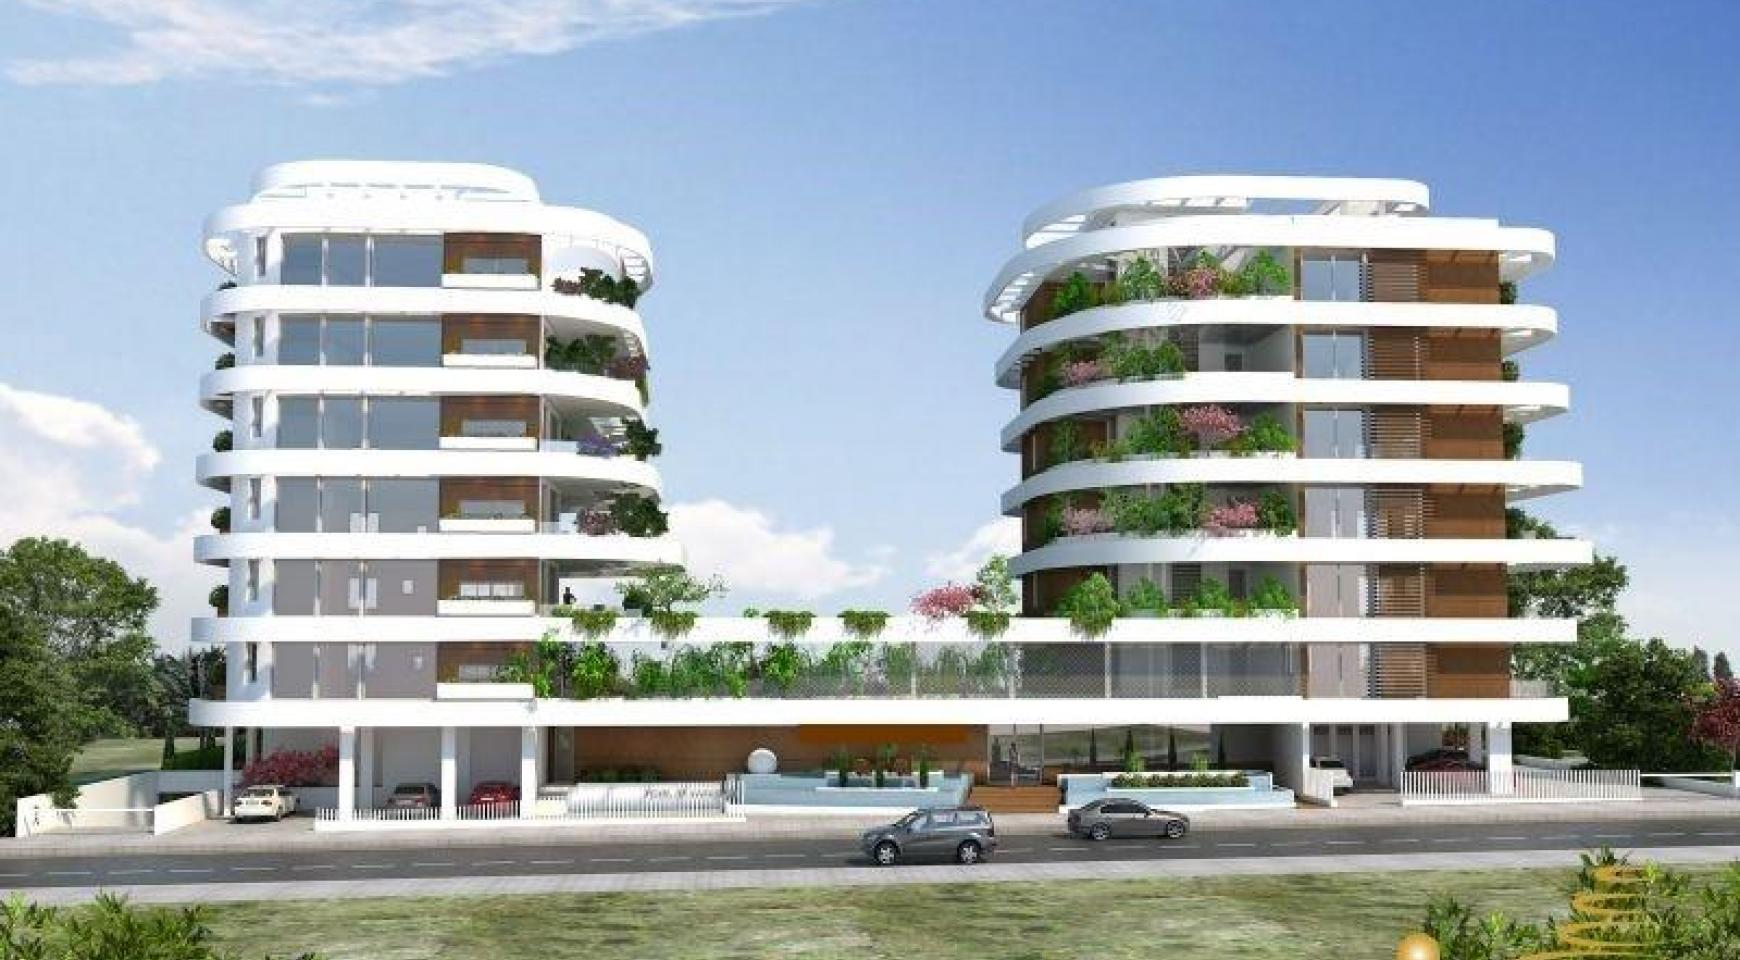 New 3 Bedroom Apartment with Private Garden - 2